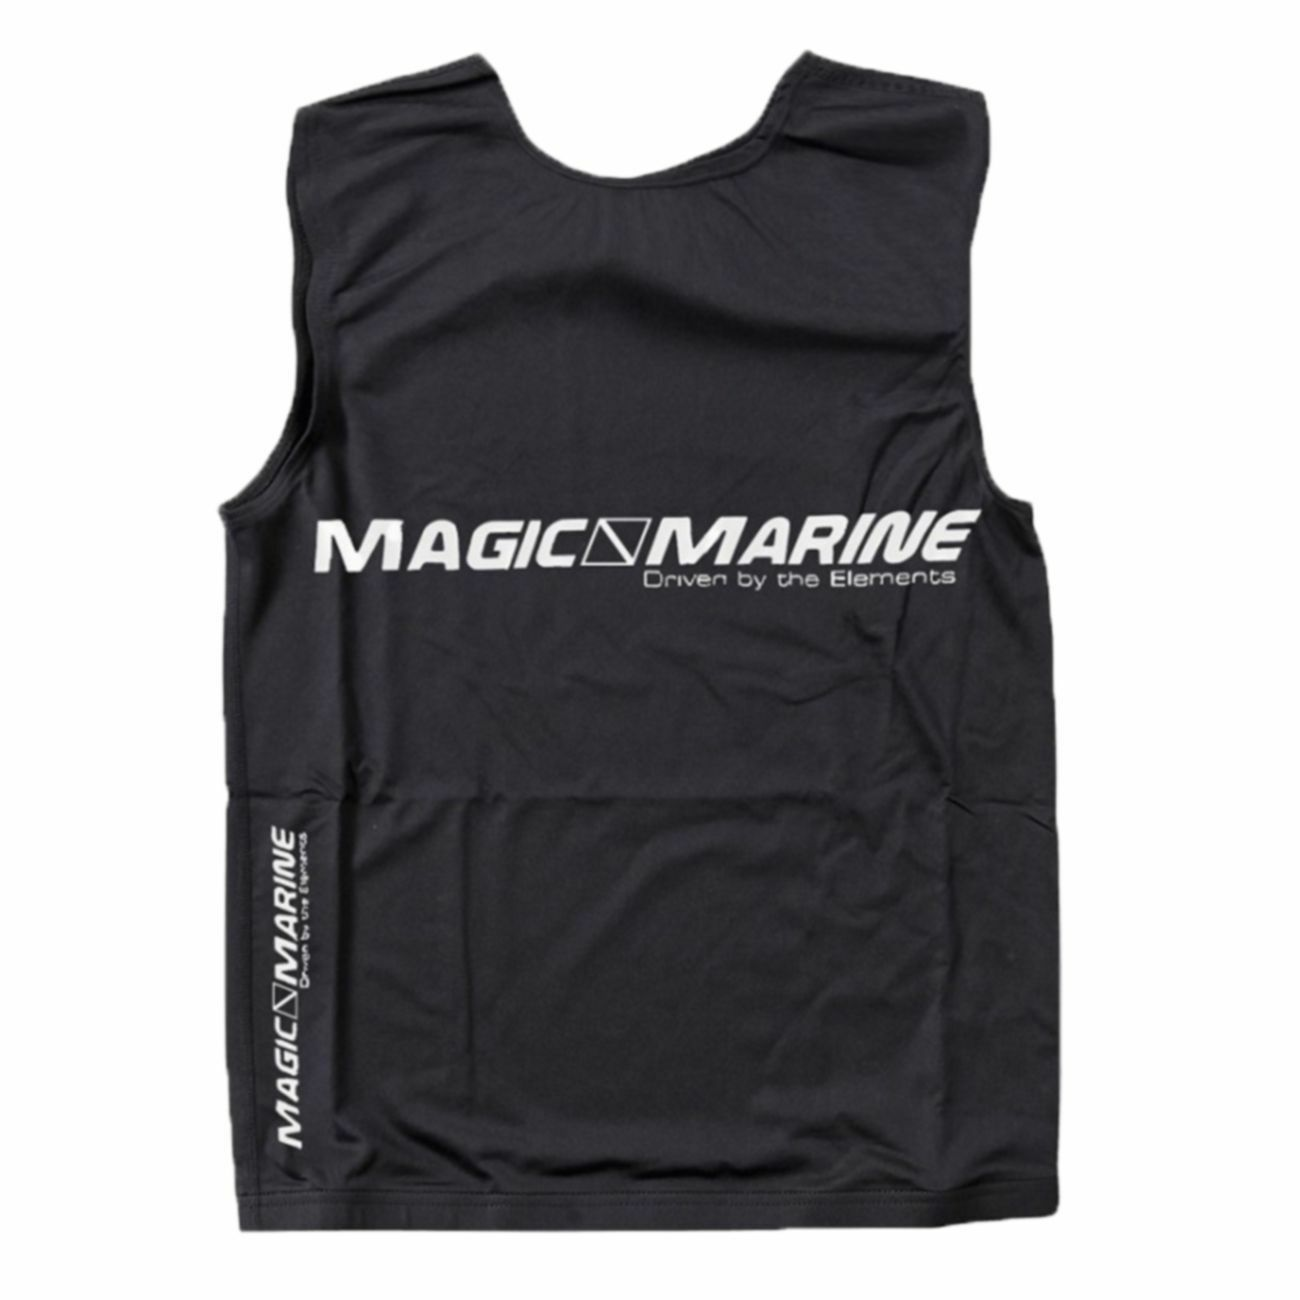 Magic Marine Reversible Tank Top Teamkleidung Camisole Shirt without Arms Sports